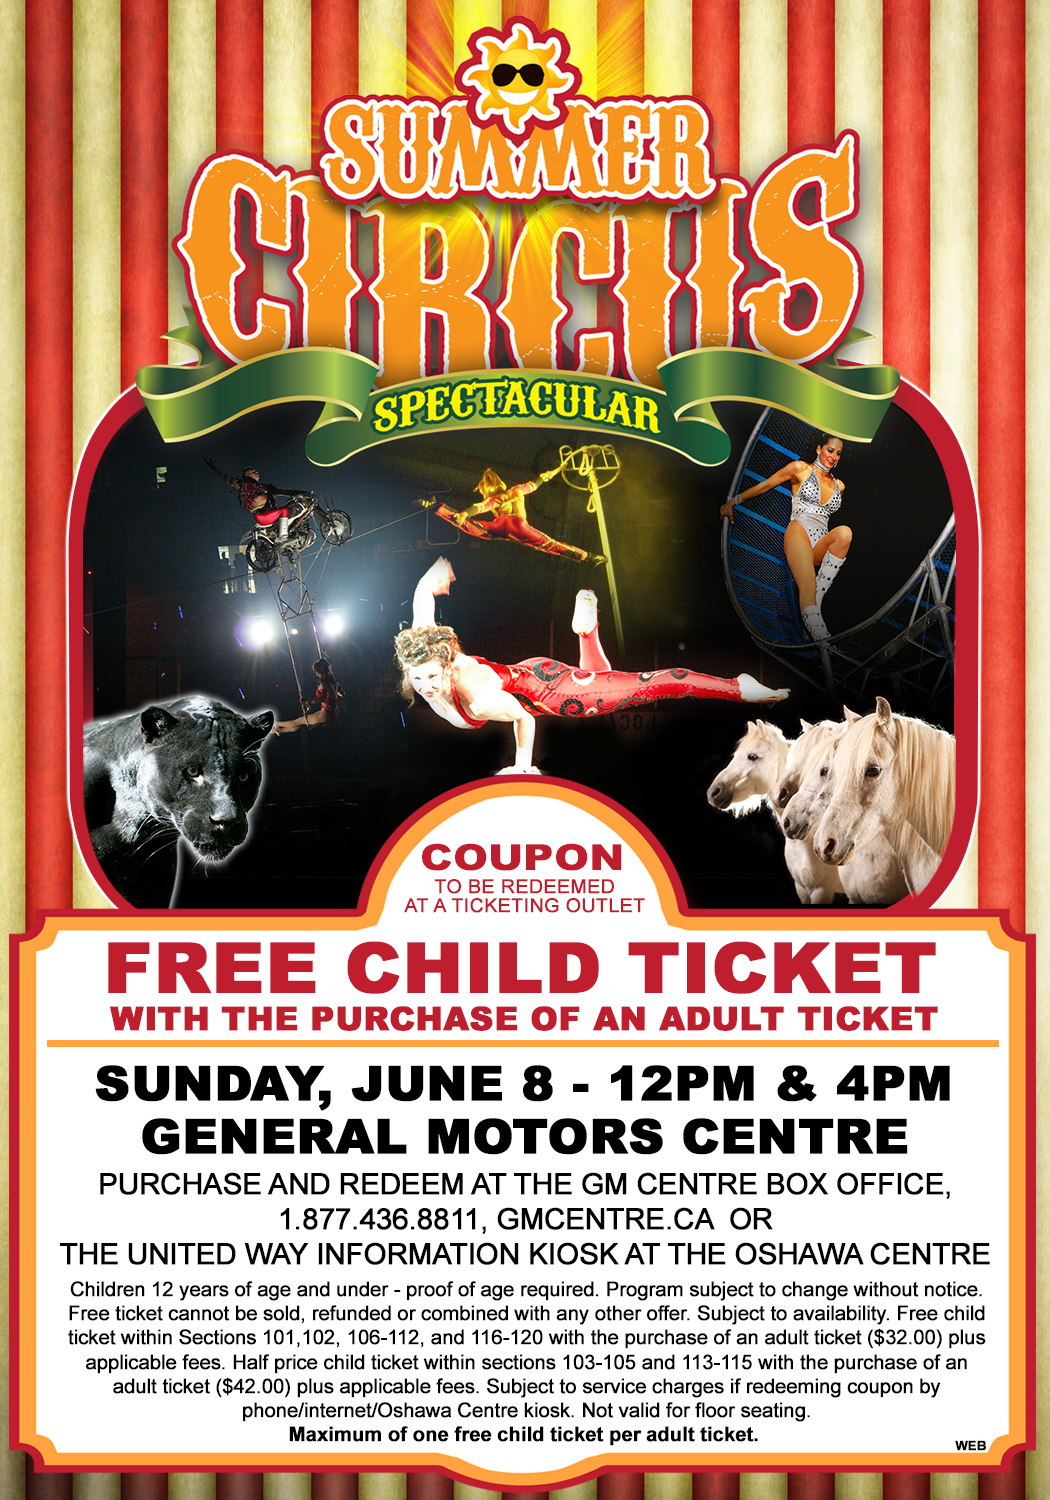 Fun For The Whole Family Summer Circus Spectacular In Oshawa